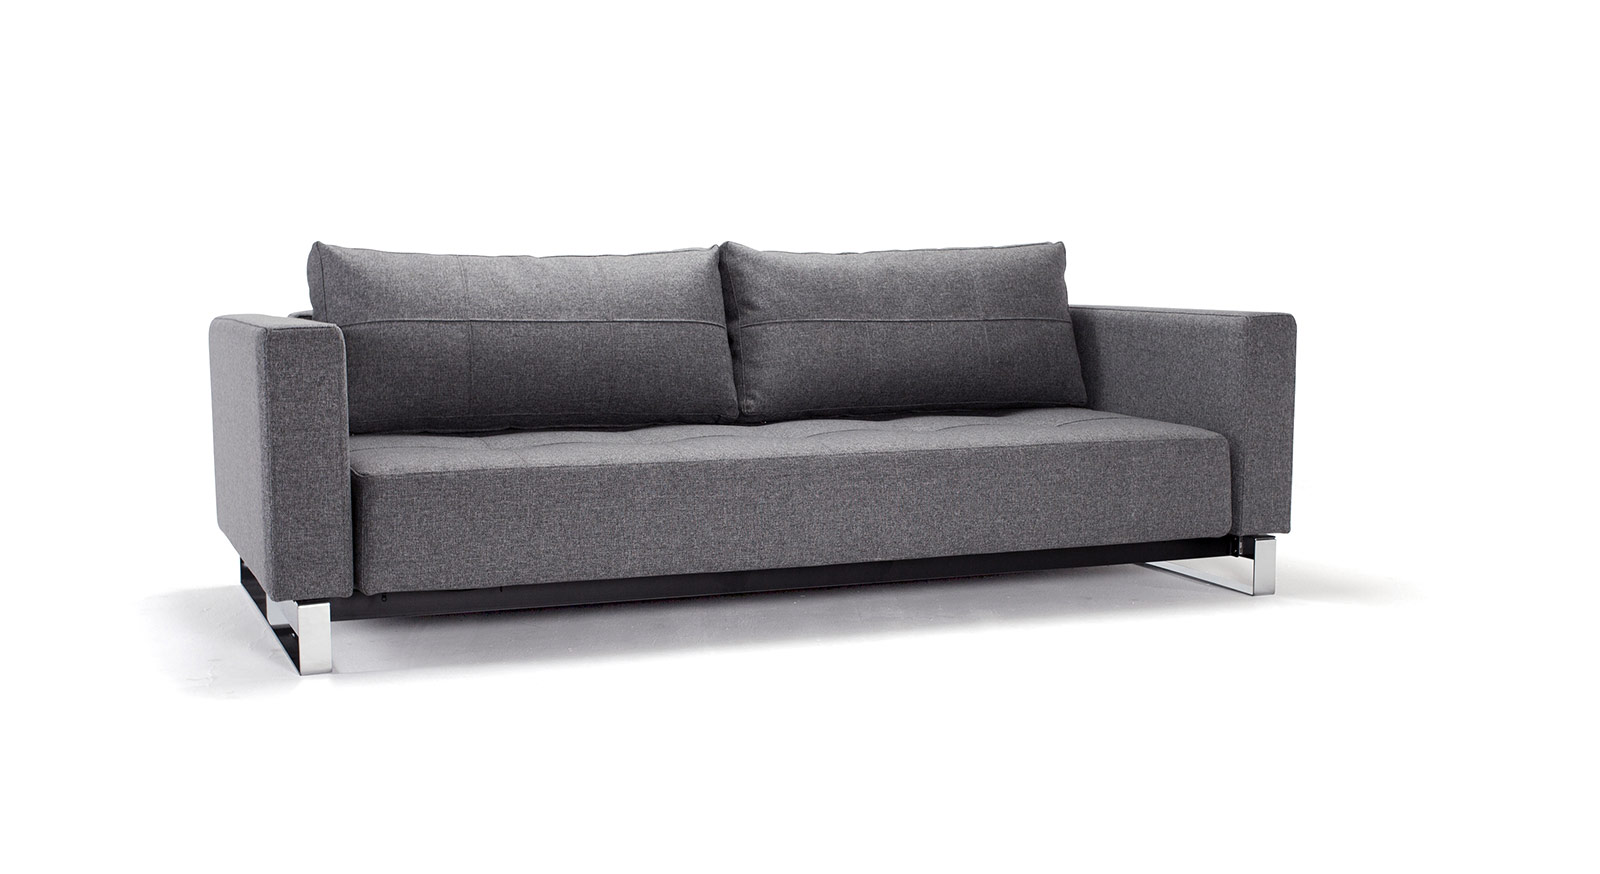 schlafsofa mit federkern in grau kaufen wilshere. Black Bedroom Furniture Sets. Home Design Ideas